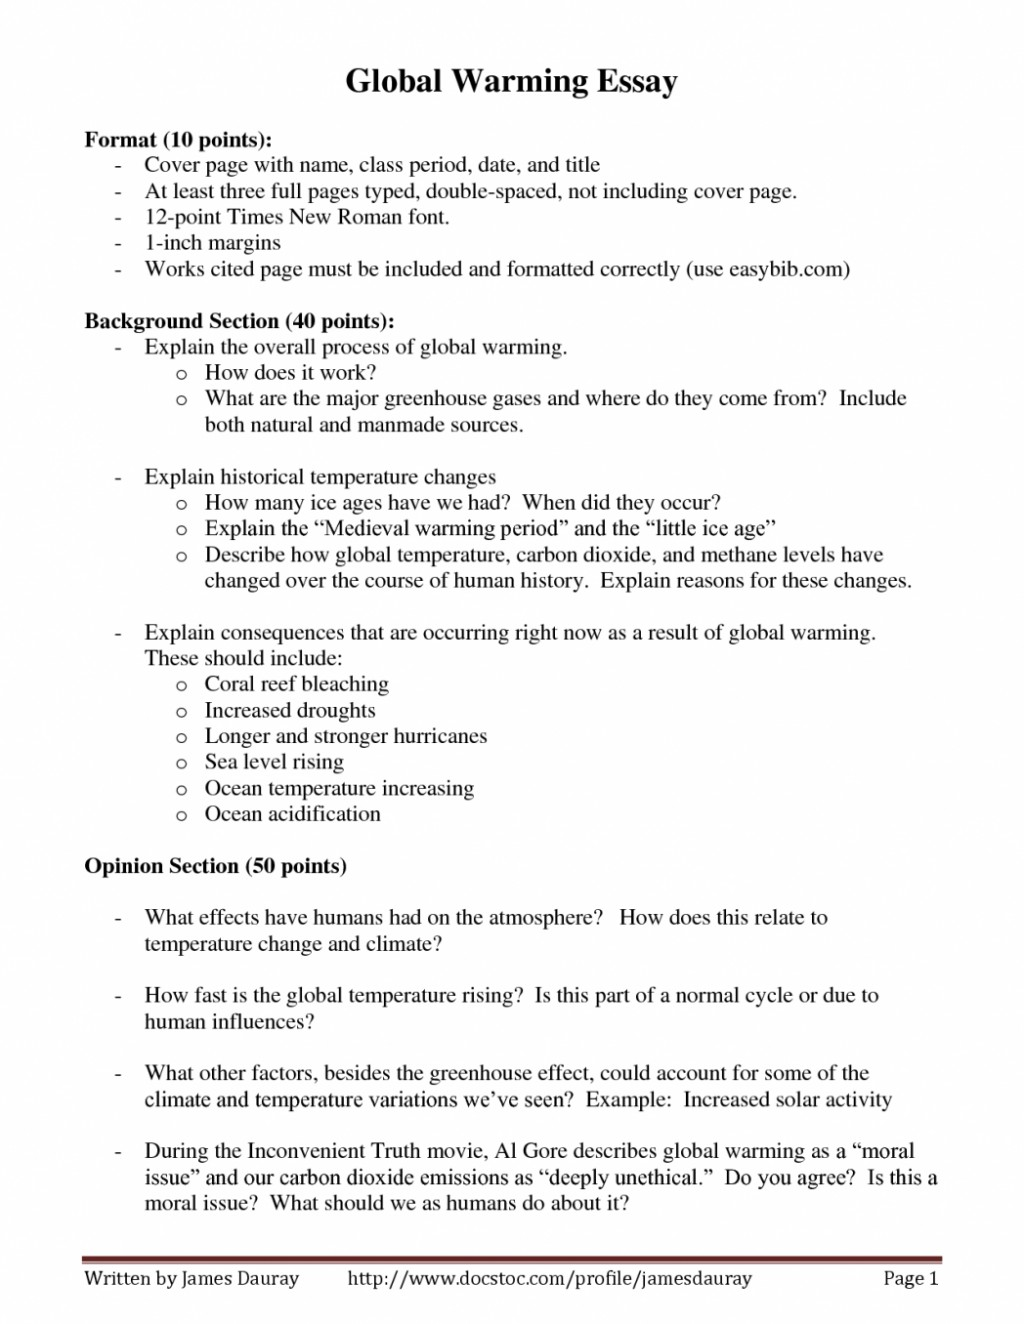 004 Essay Example On Effects Of Global Warming Custom Paper Academic Writing Best Essays Causes L And Report In Hindi Pdf Topic An Argumentative Impressive With Introduction Conclusion Greenhouse Effect 600 Words Large